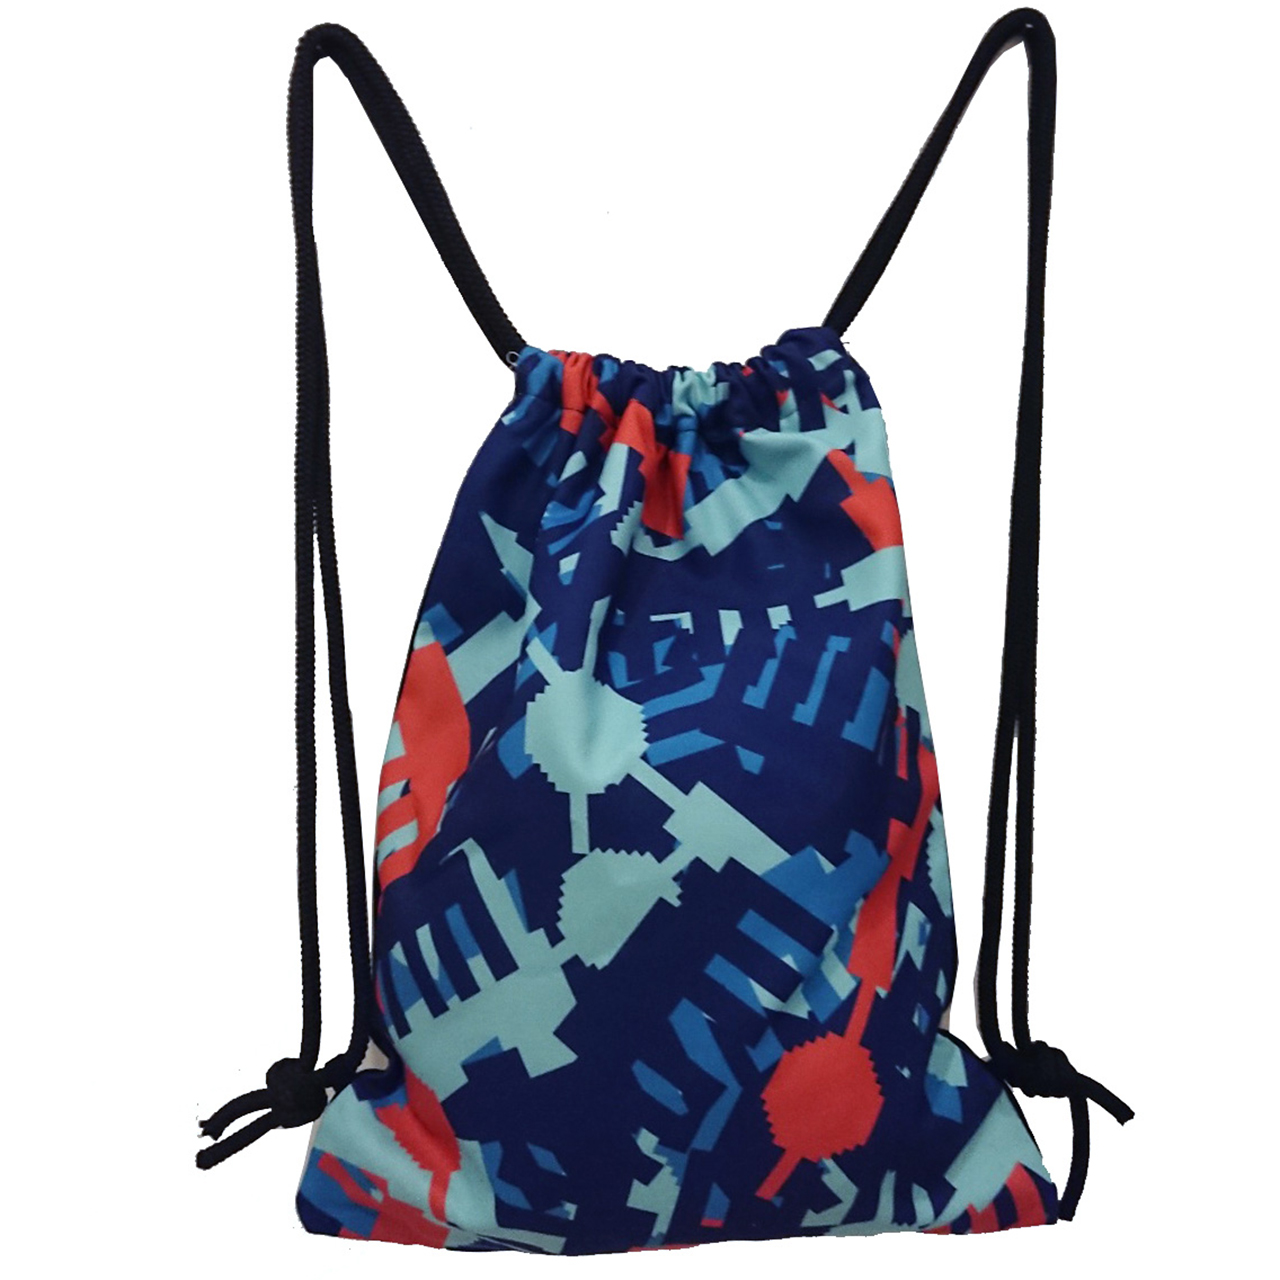 Rucksack/Gymbag Allover Camouflage blau/rot